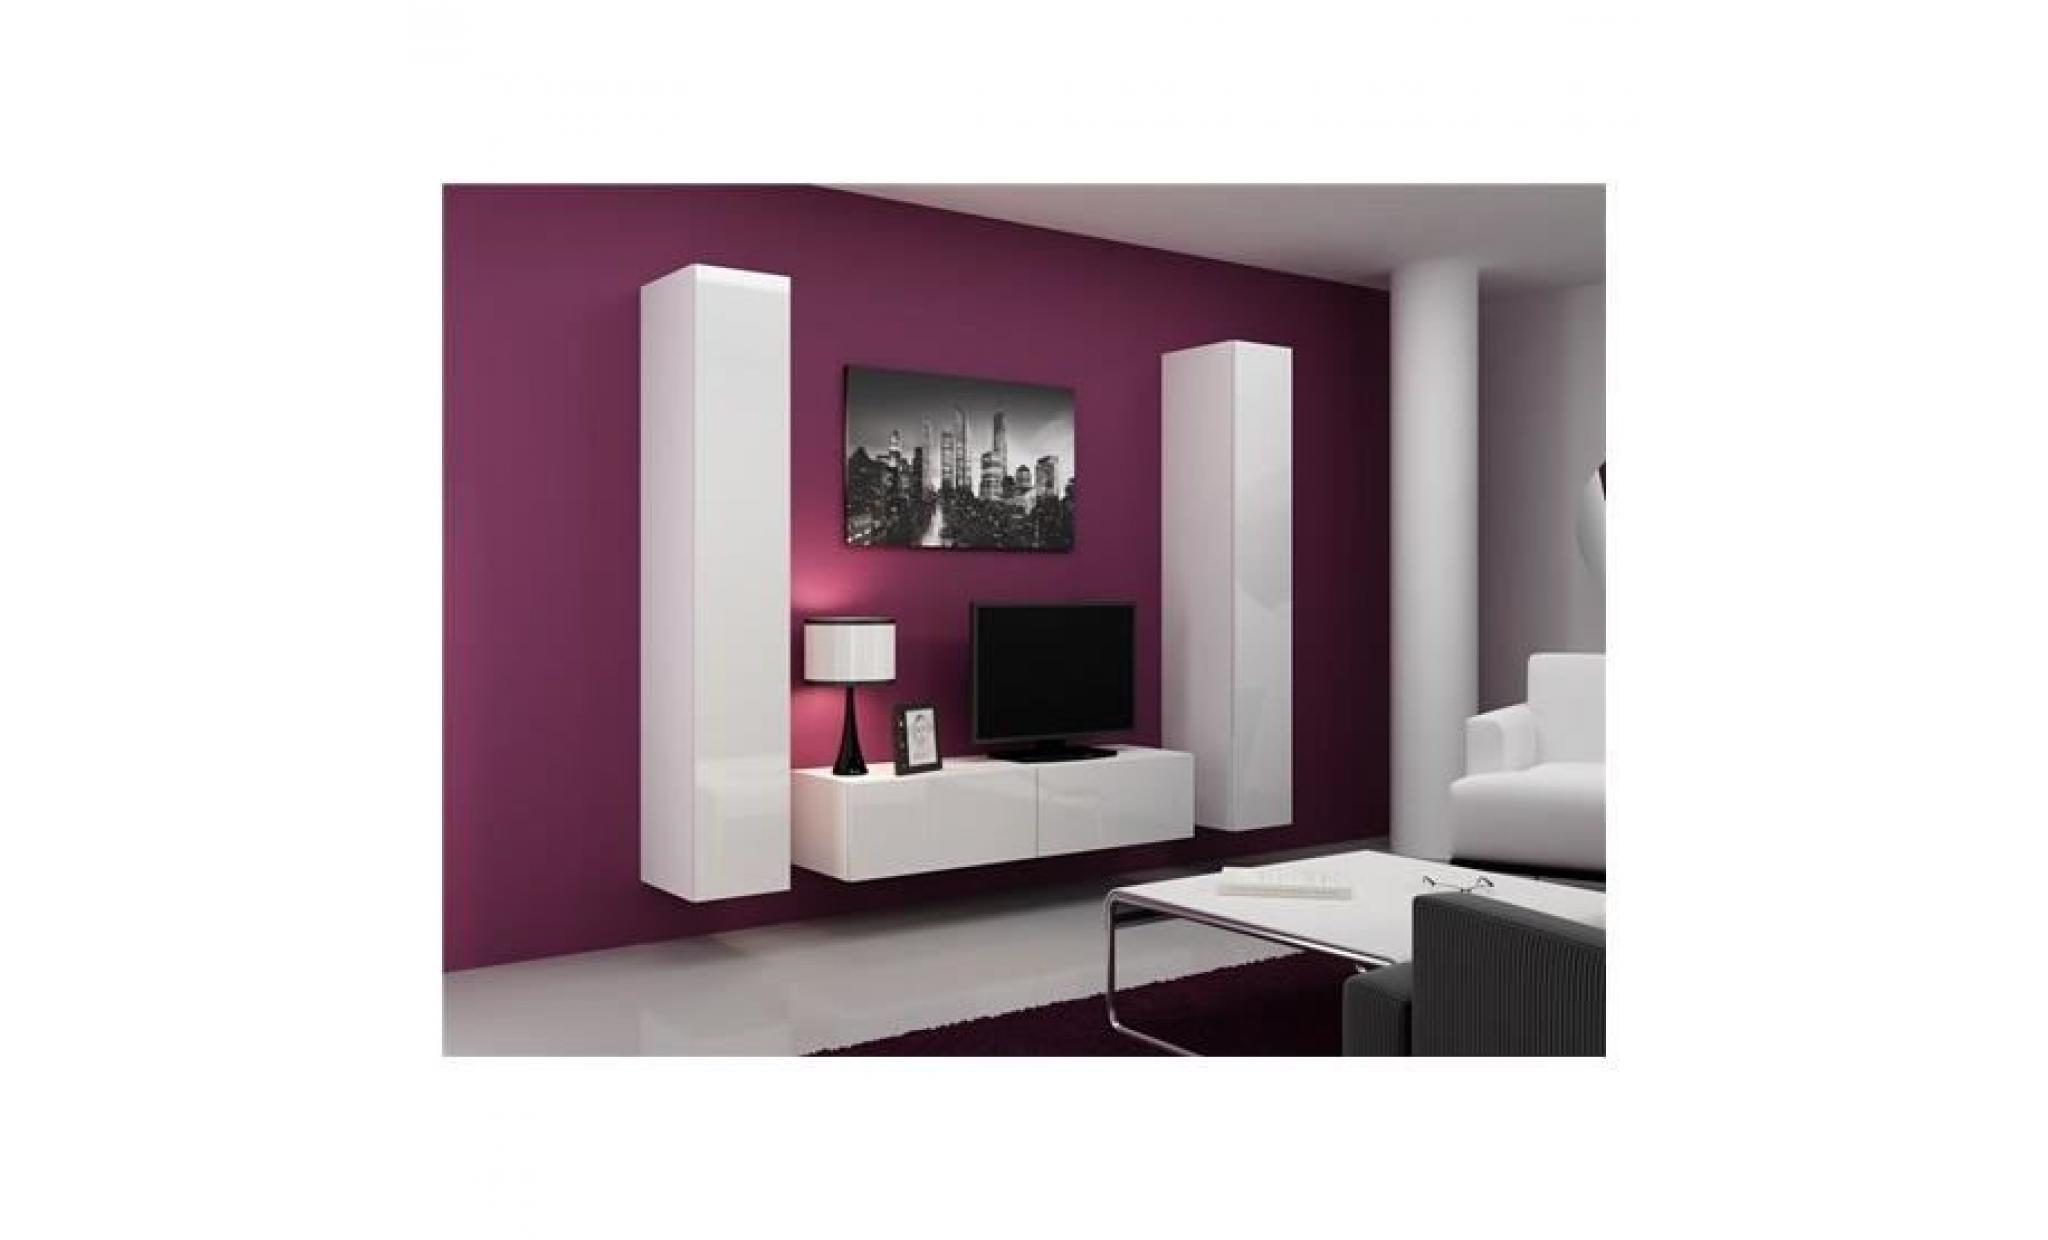 Meuble tv design suspendu vini blanc achat vente meuble - Meuble tv suspendu design ...